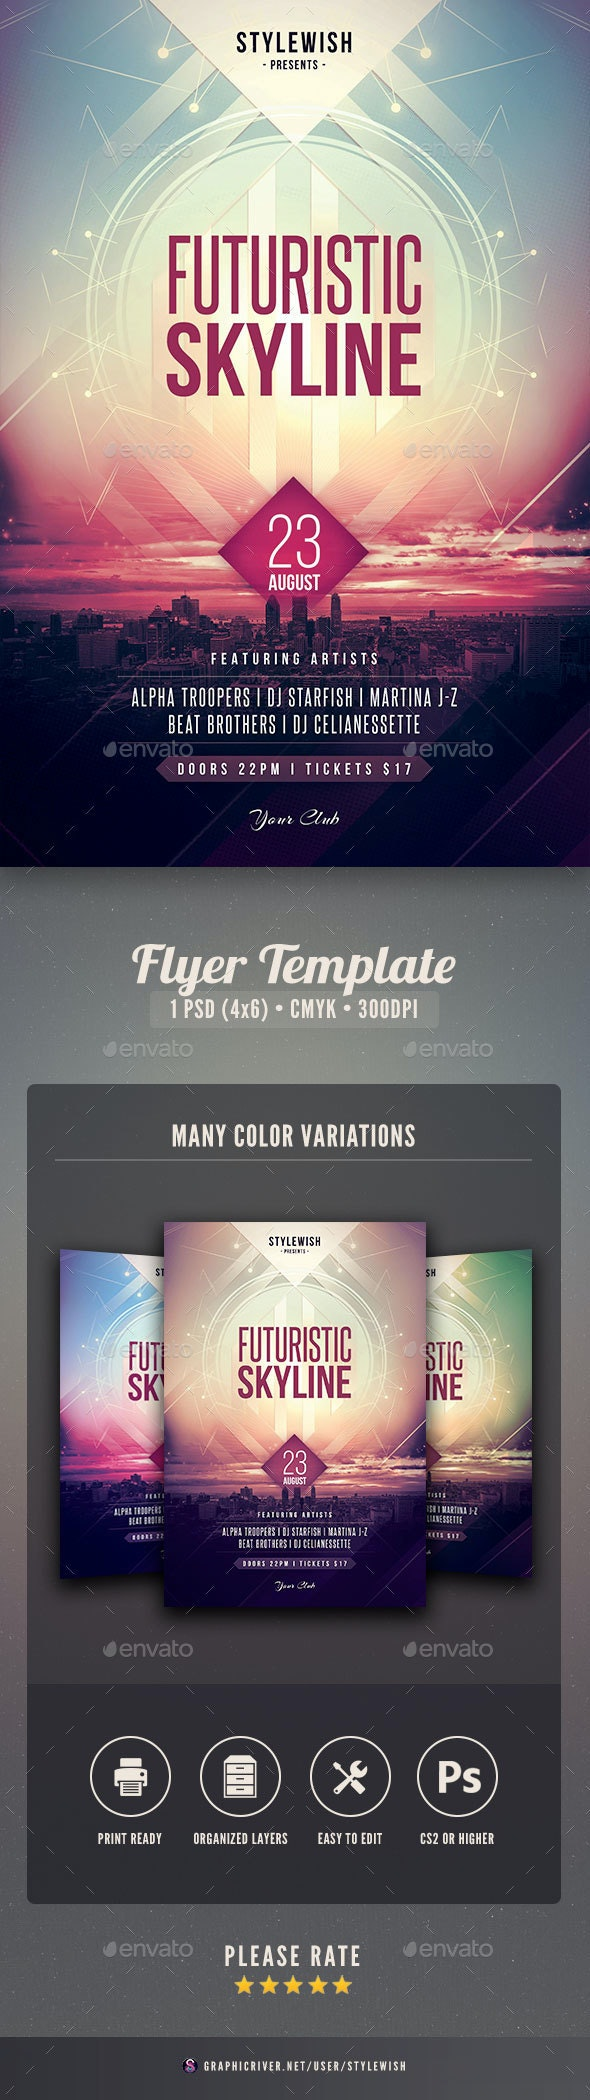 Futuristic Skyline Flyer - Clubs & Parties Events